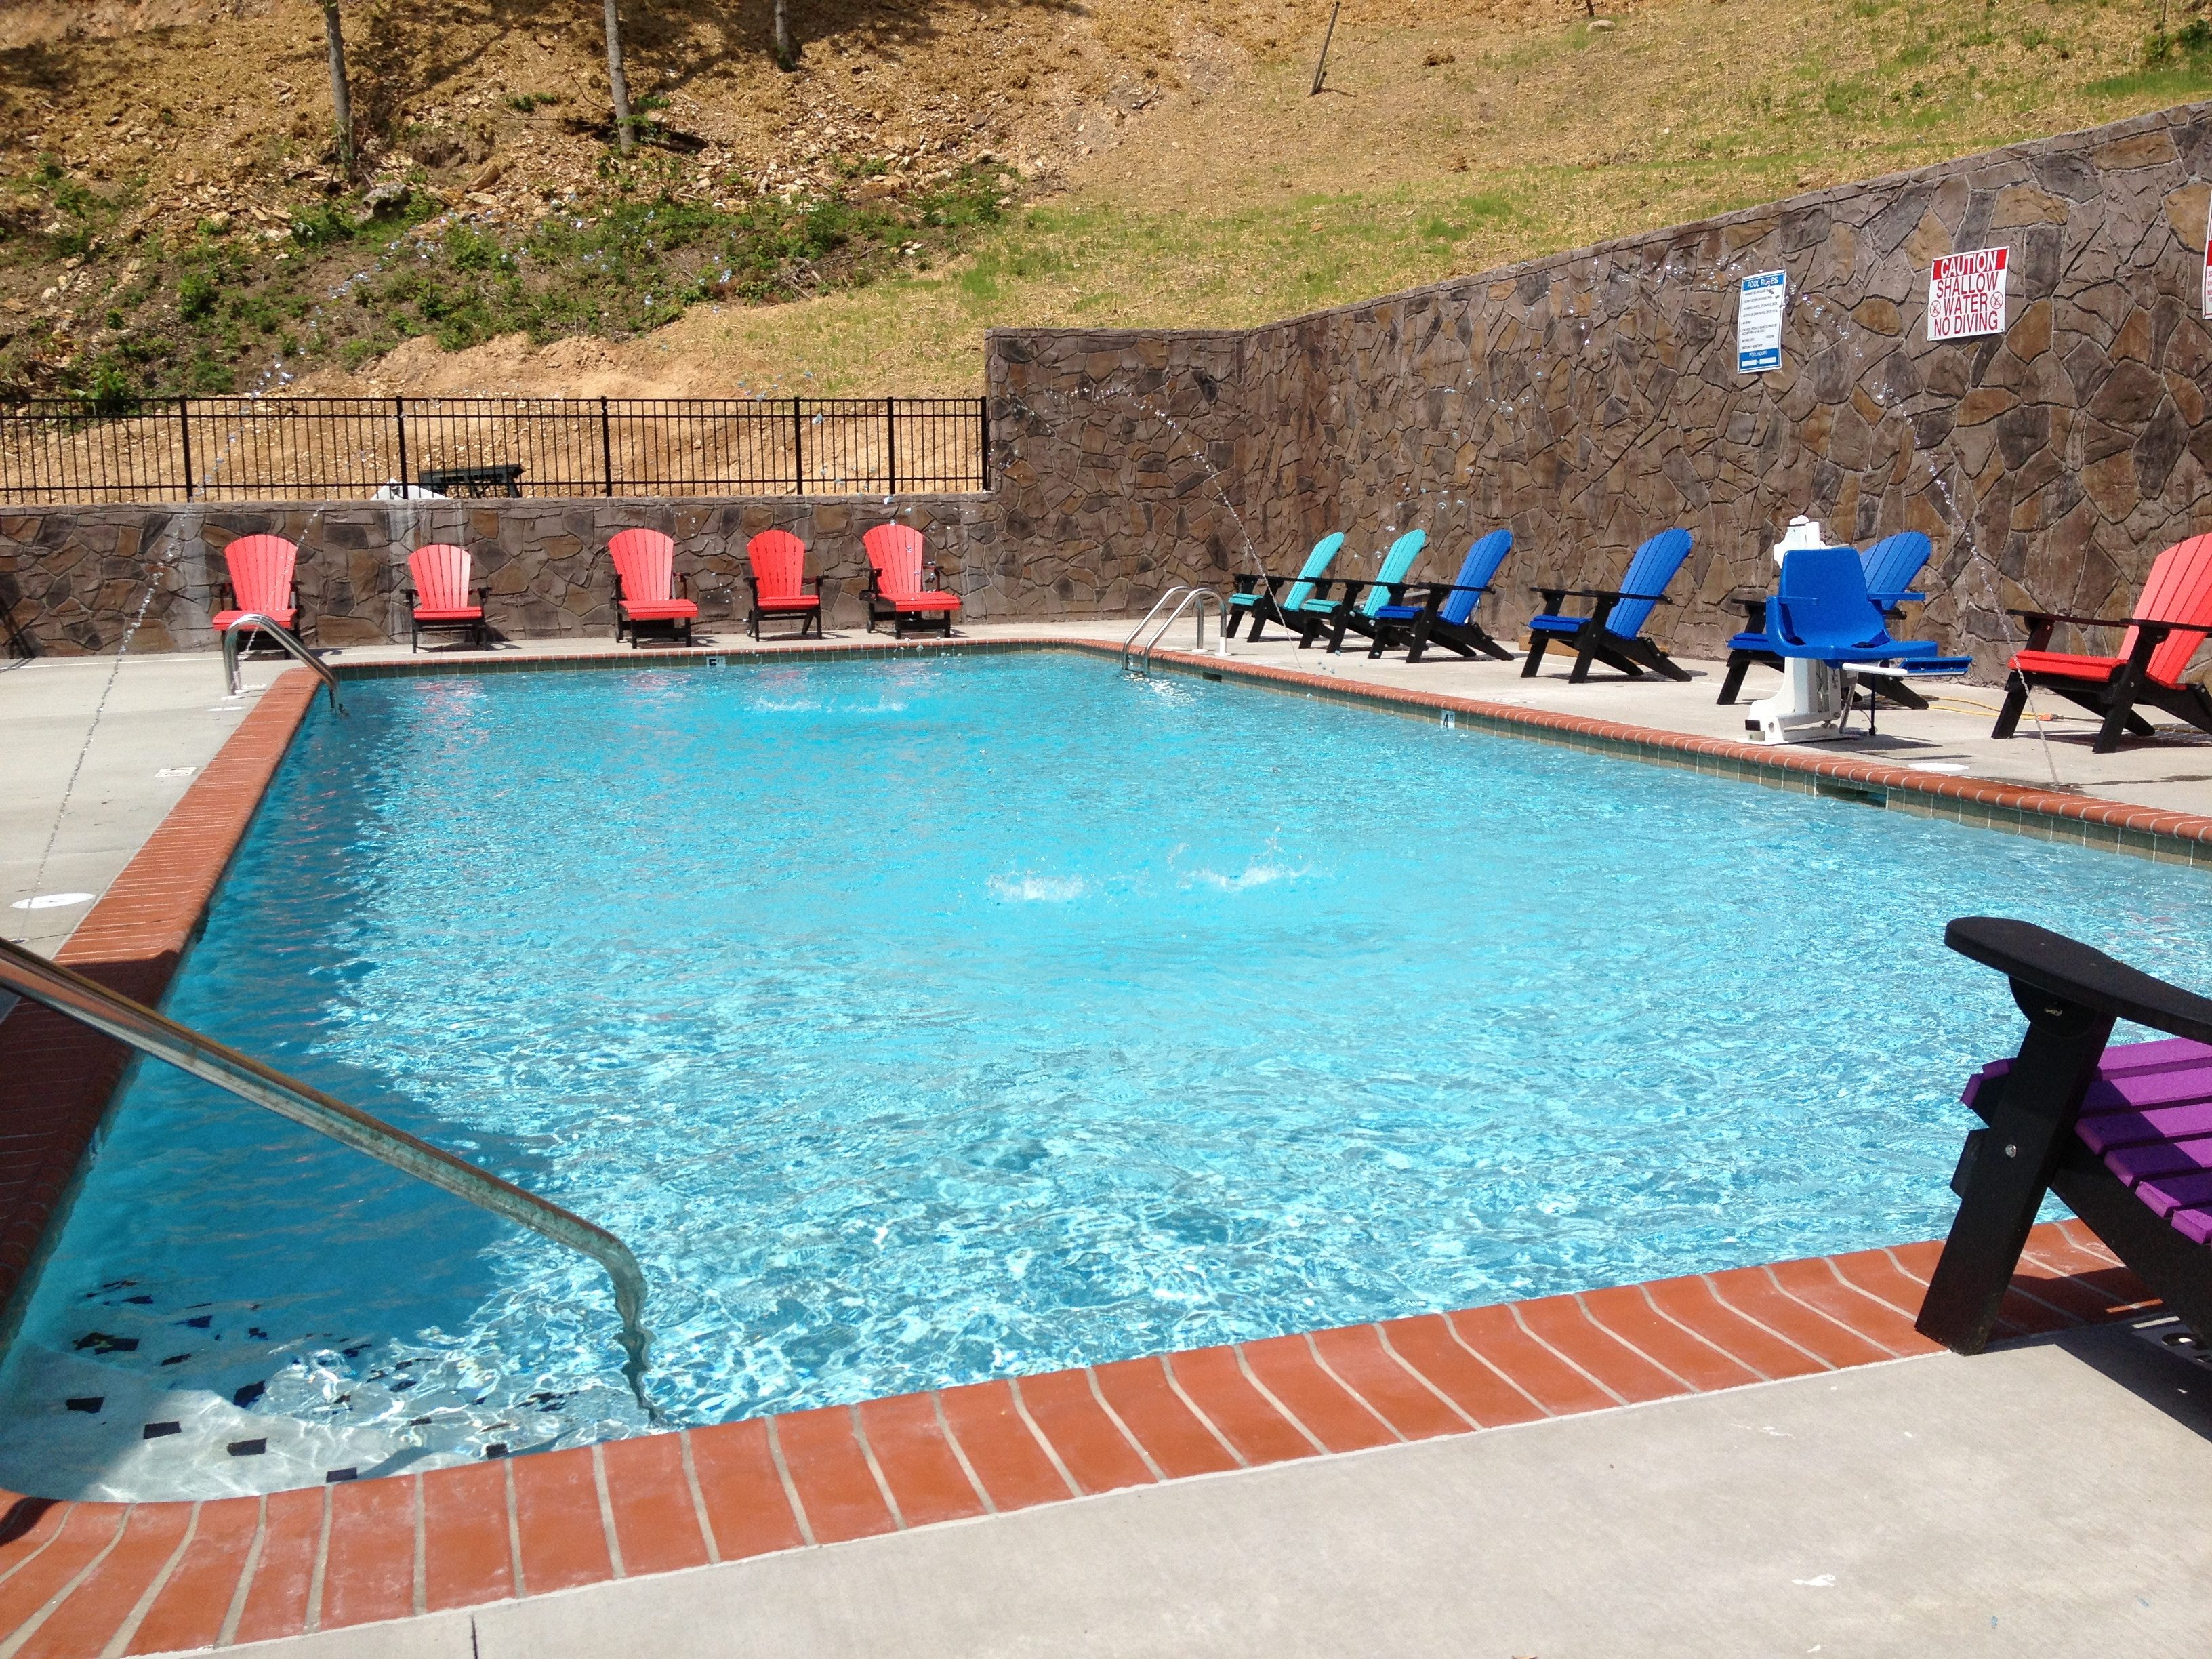 dollywood friendly pool near pigeon under tn forge pet indoor luxury for cabin cabins in rent